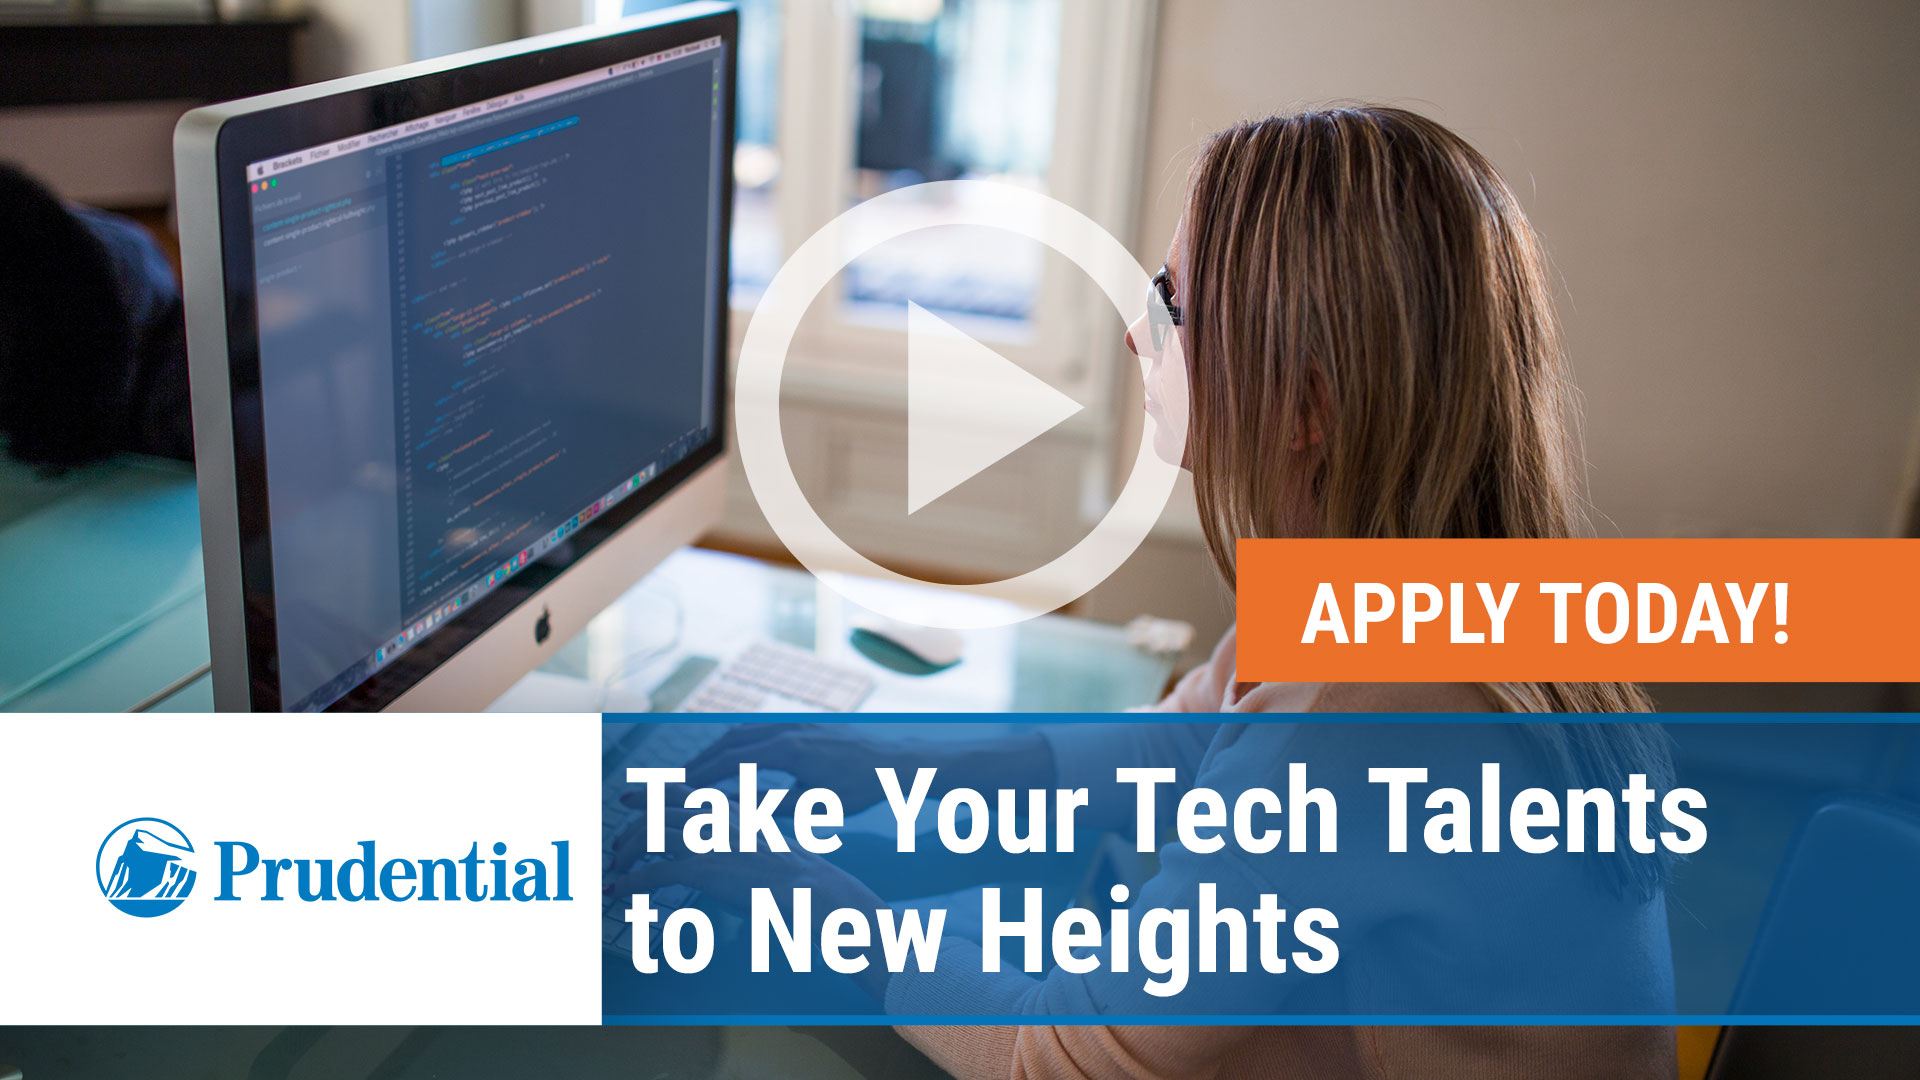 Watch our careers video for available job opening Take Your Tech Talents to New Heights in Moosic PA, Iselin NJ